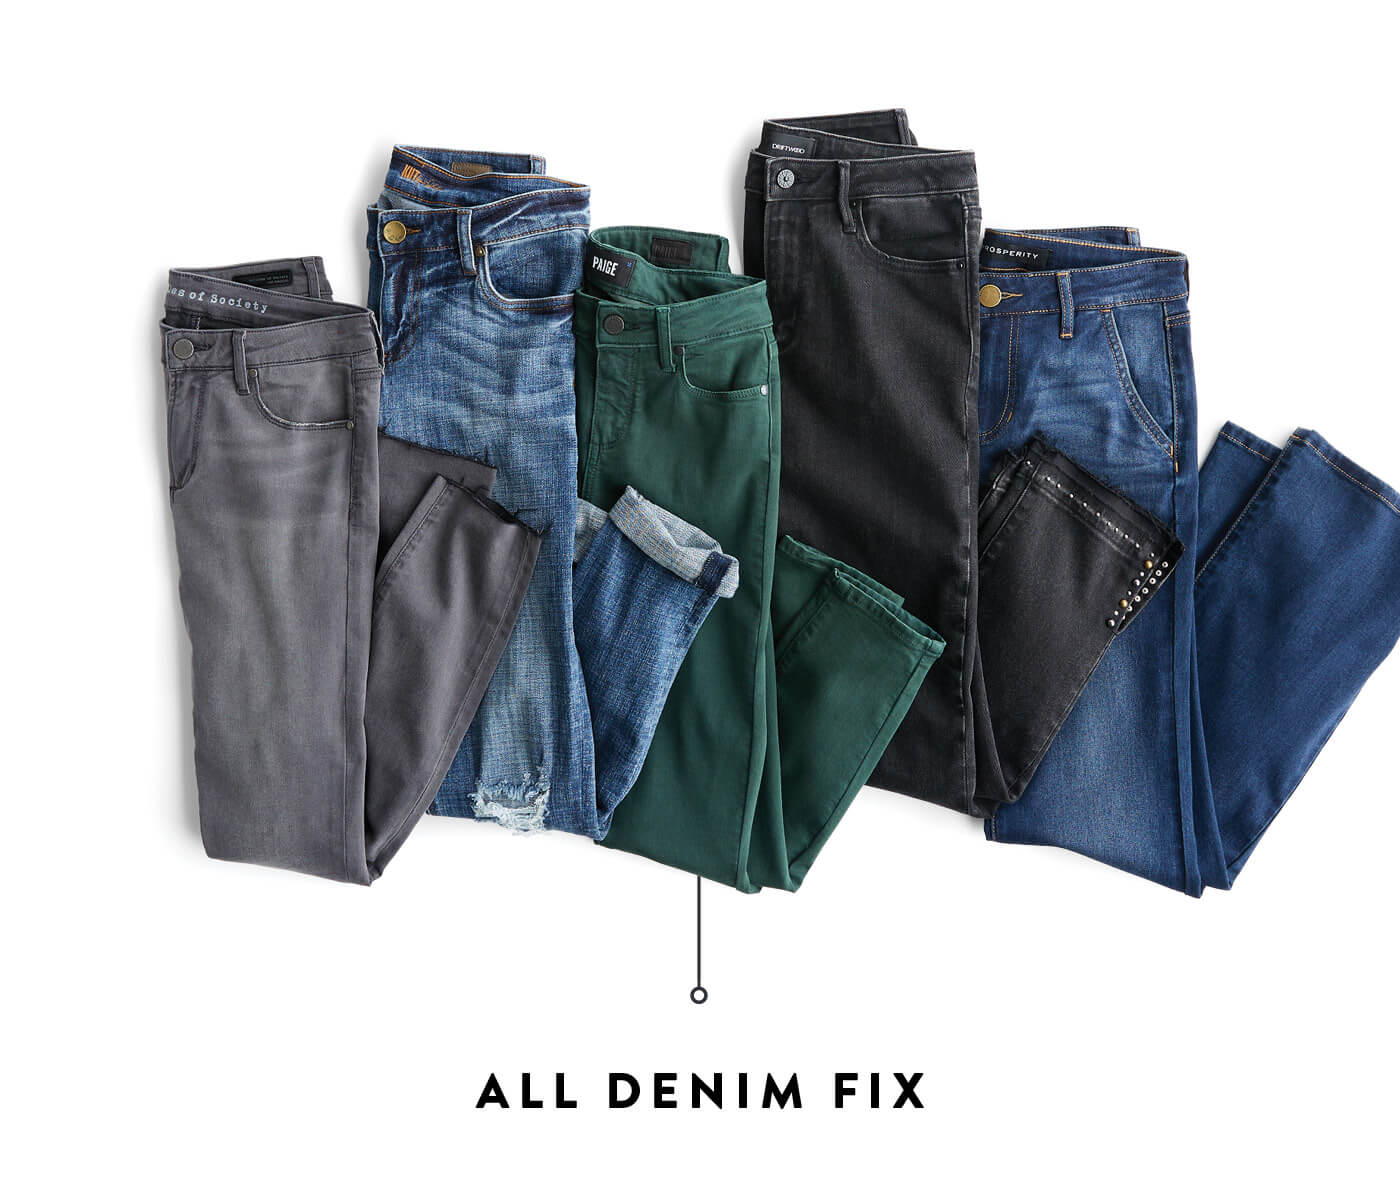 all denim fix